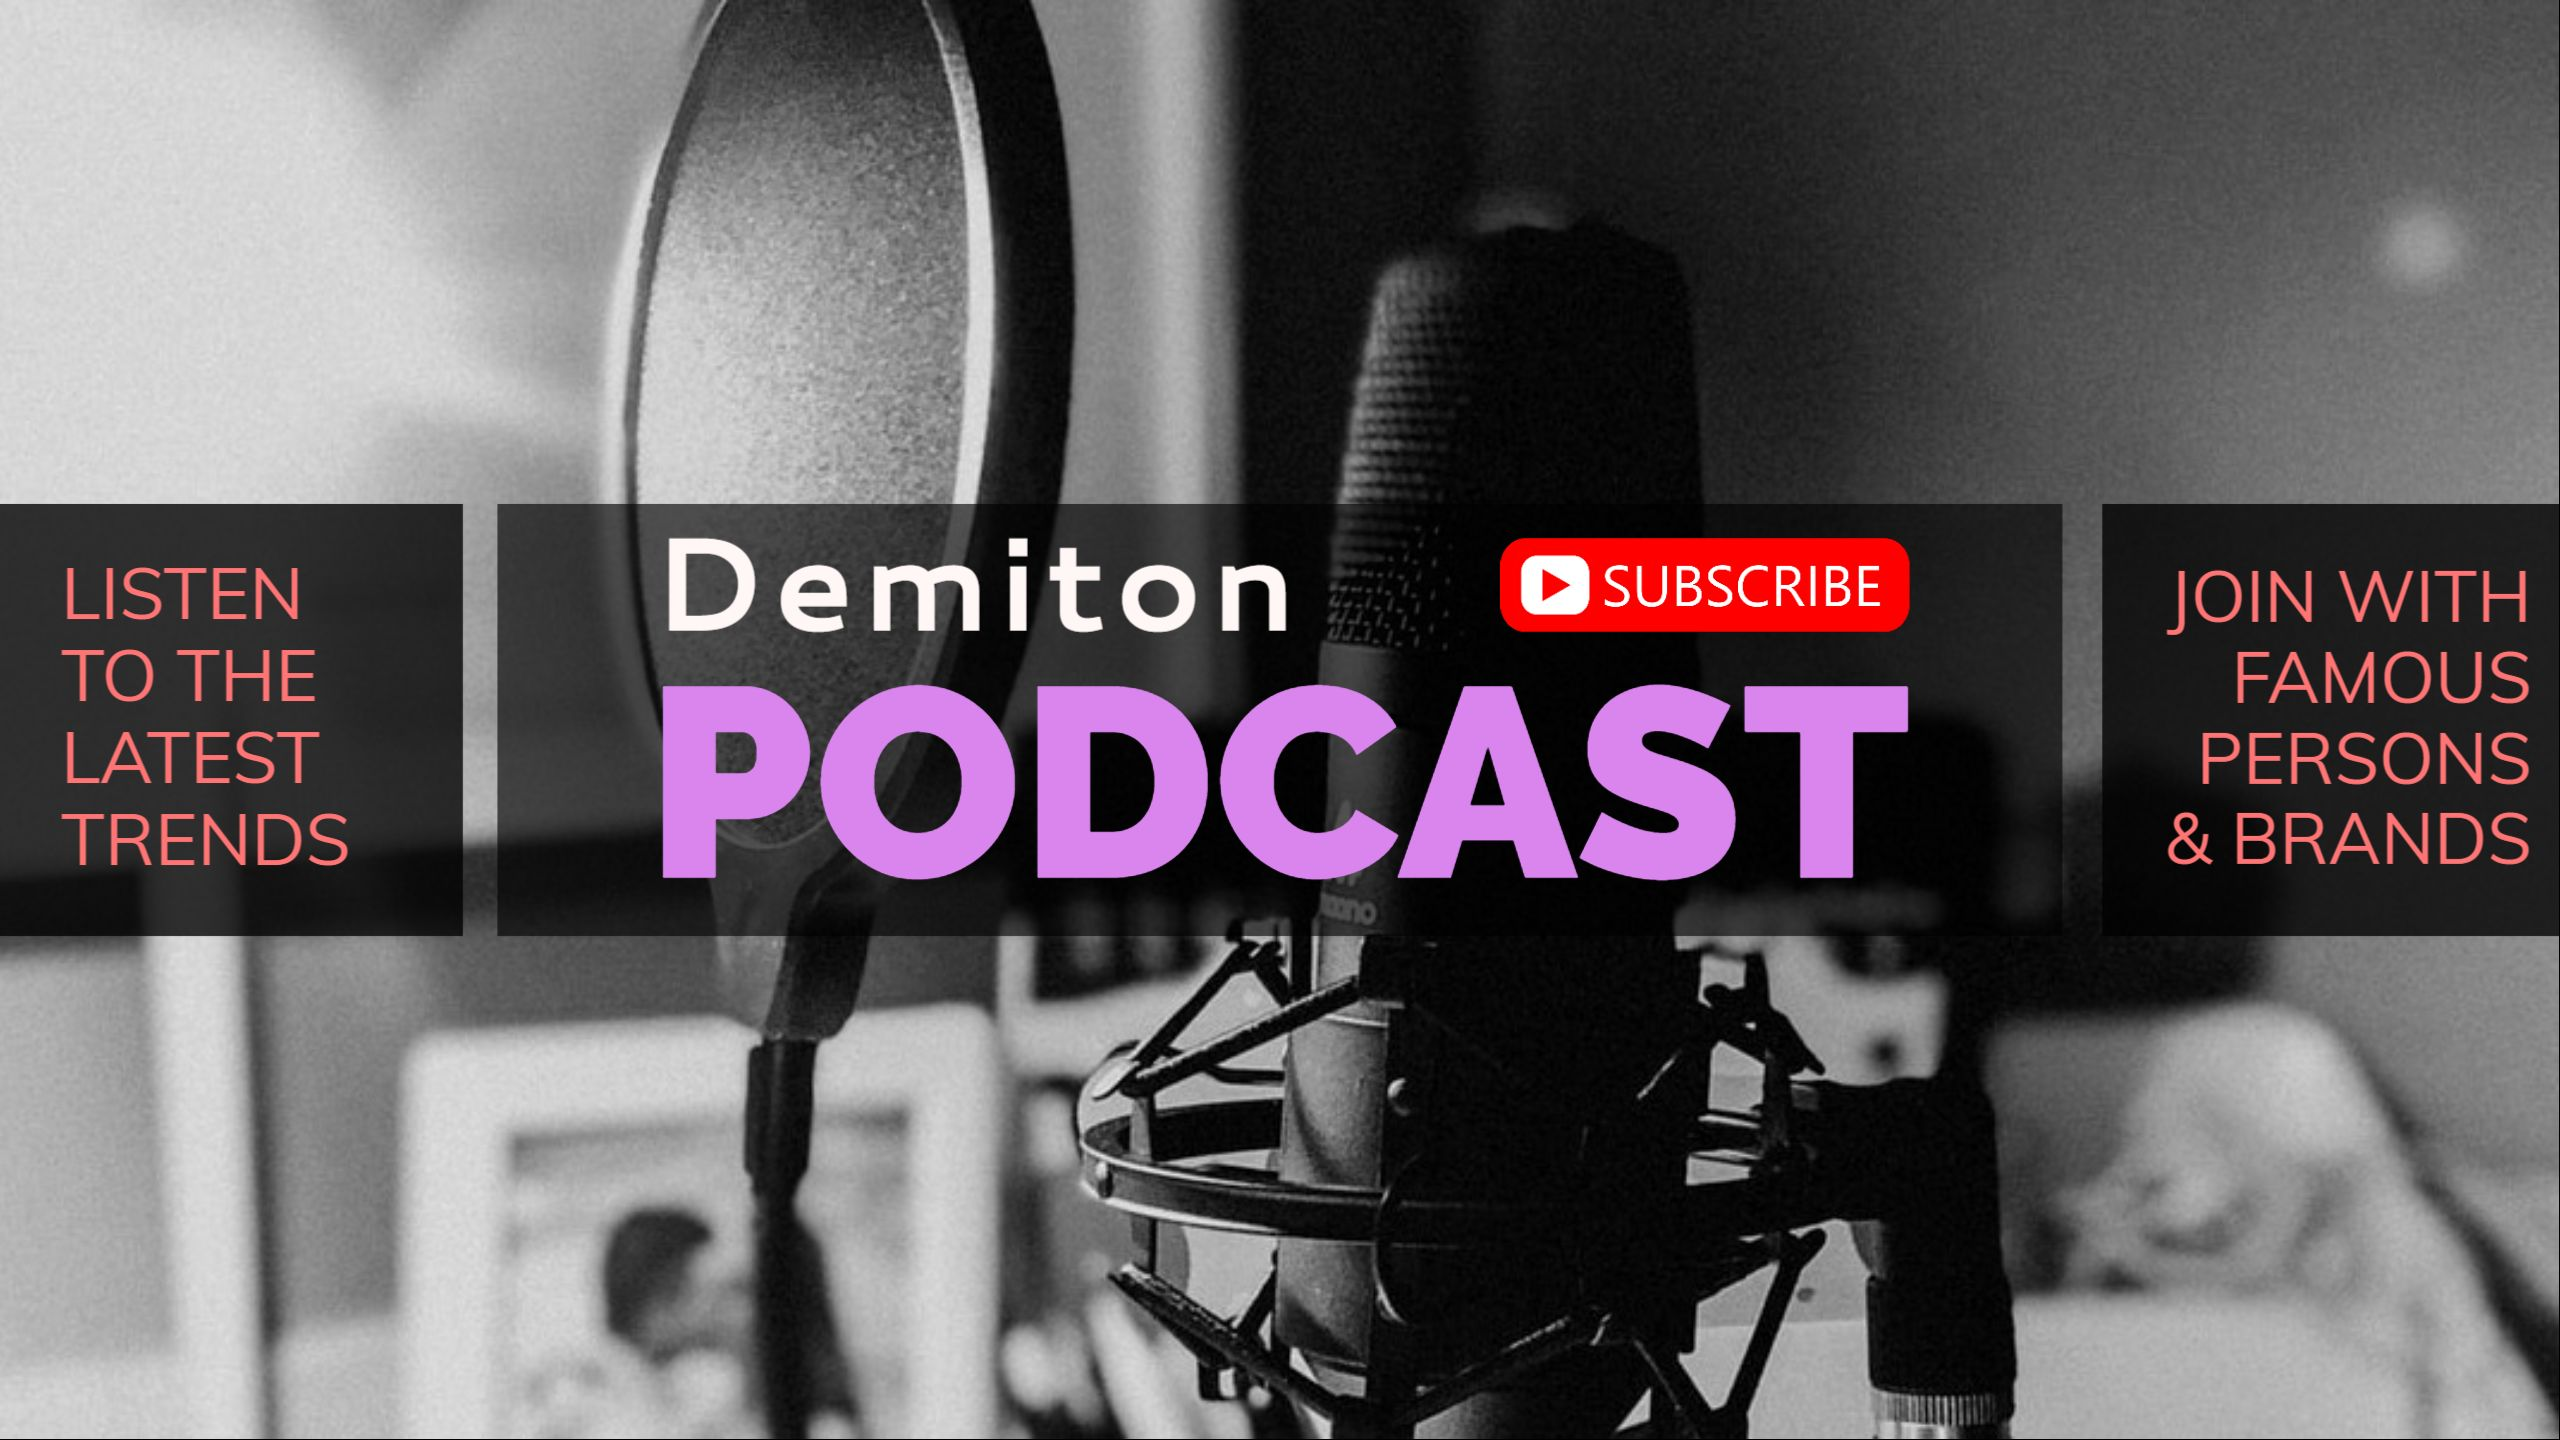 Podcast and Radio Youtube Cover Maker